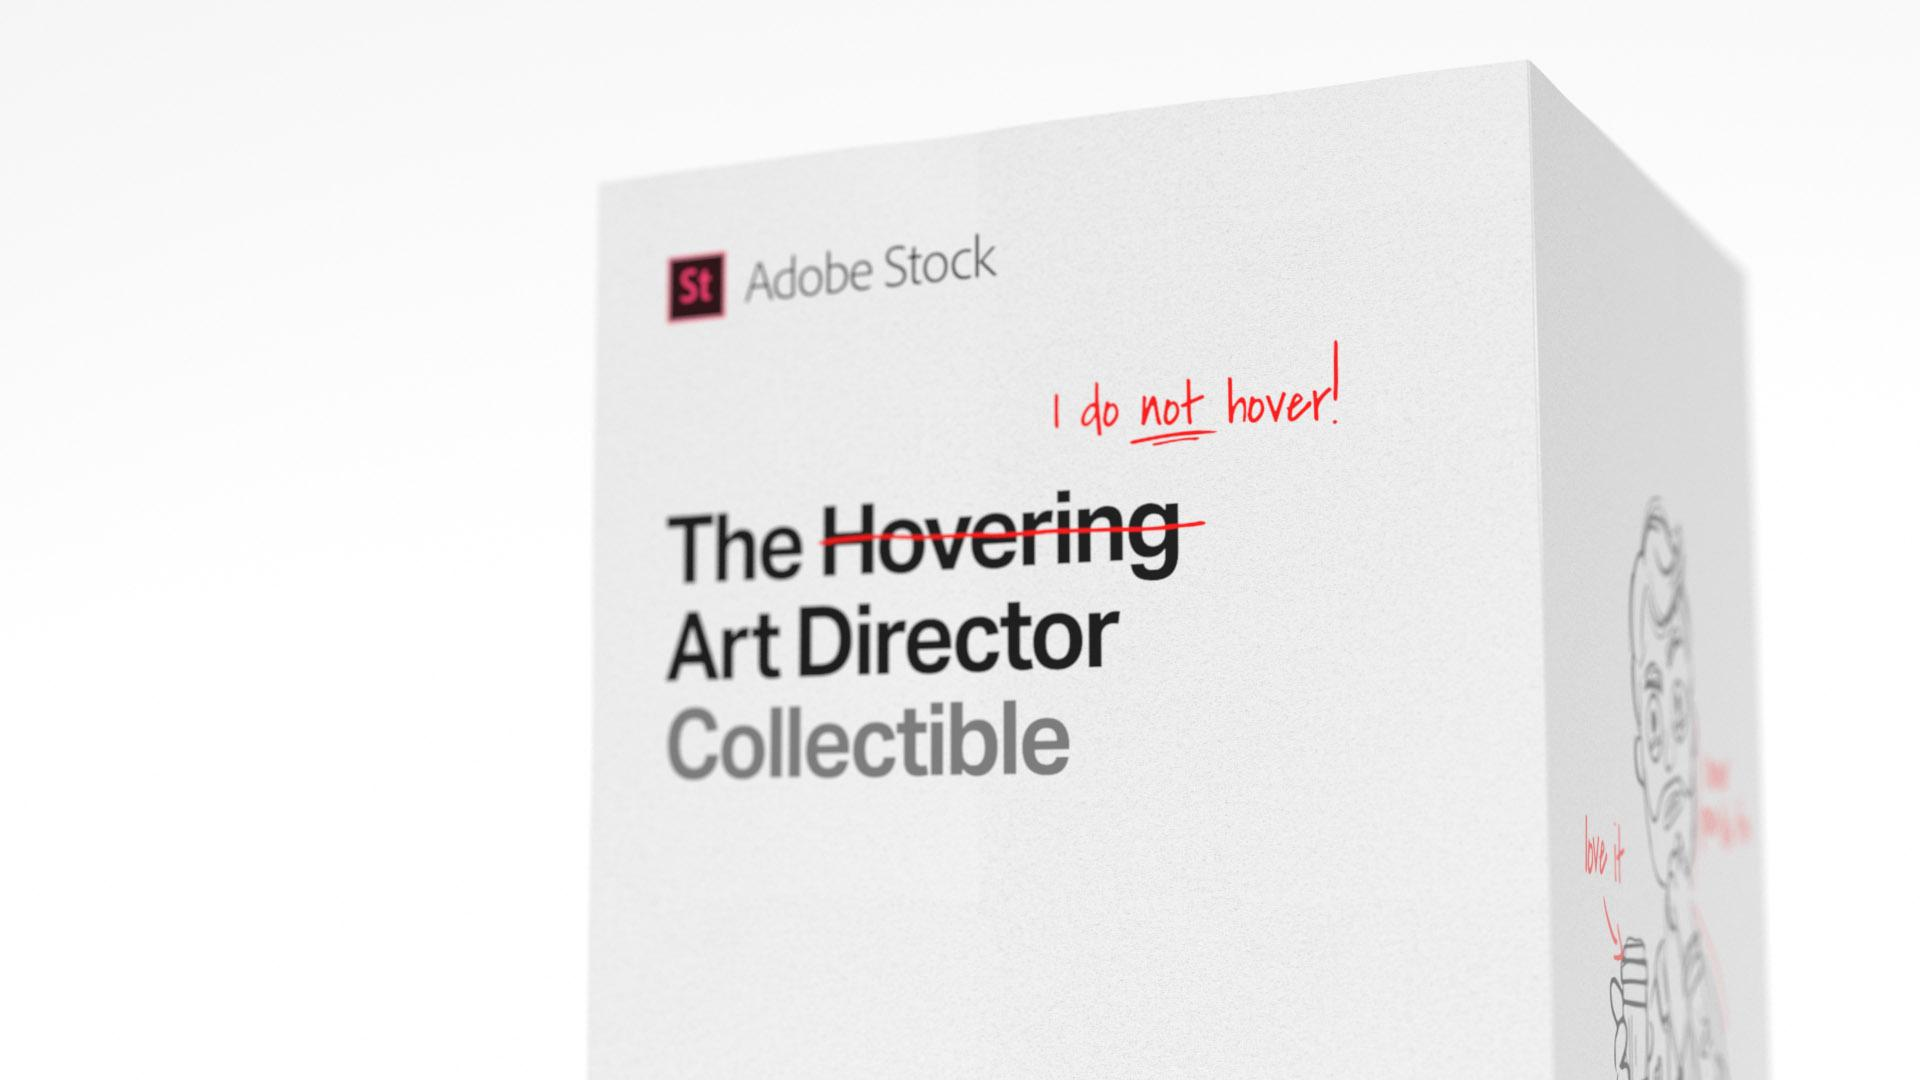 Adobe Direct Ad - Hovering art director